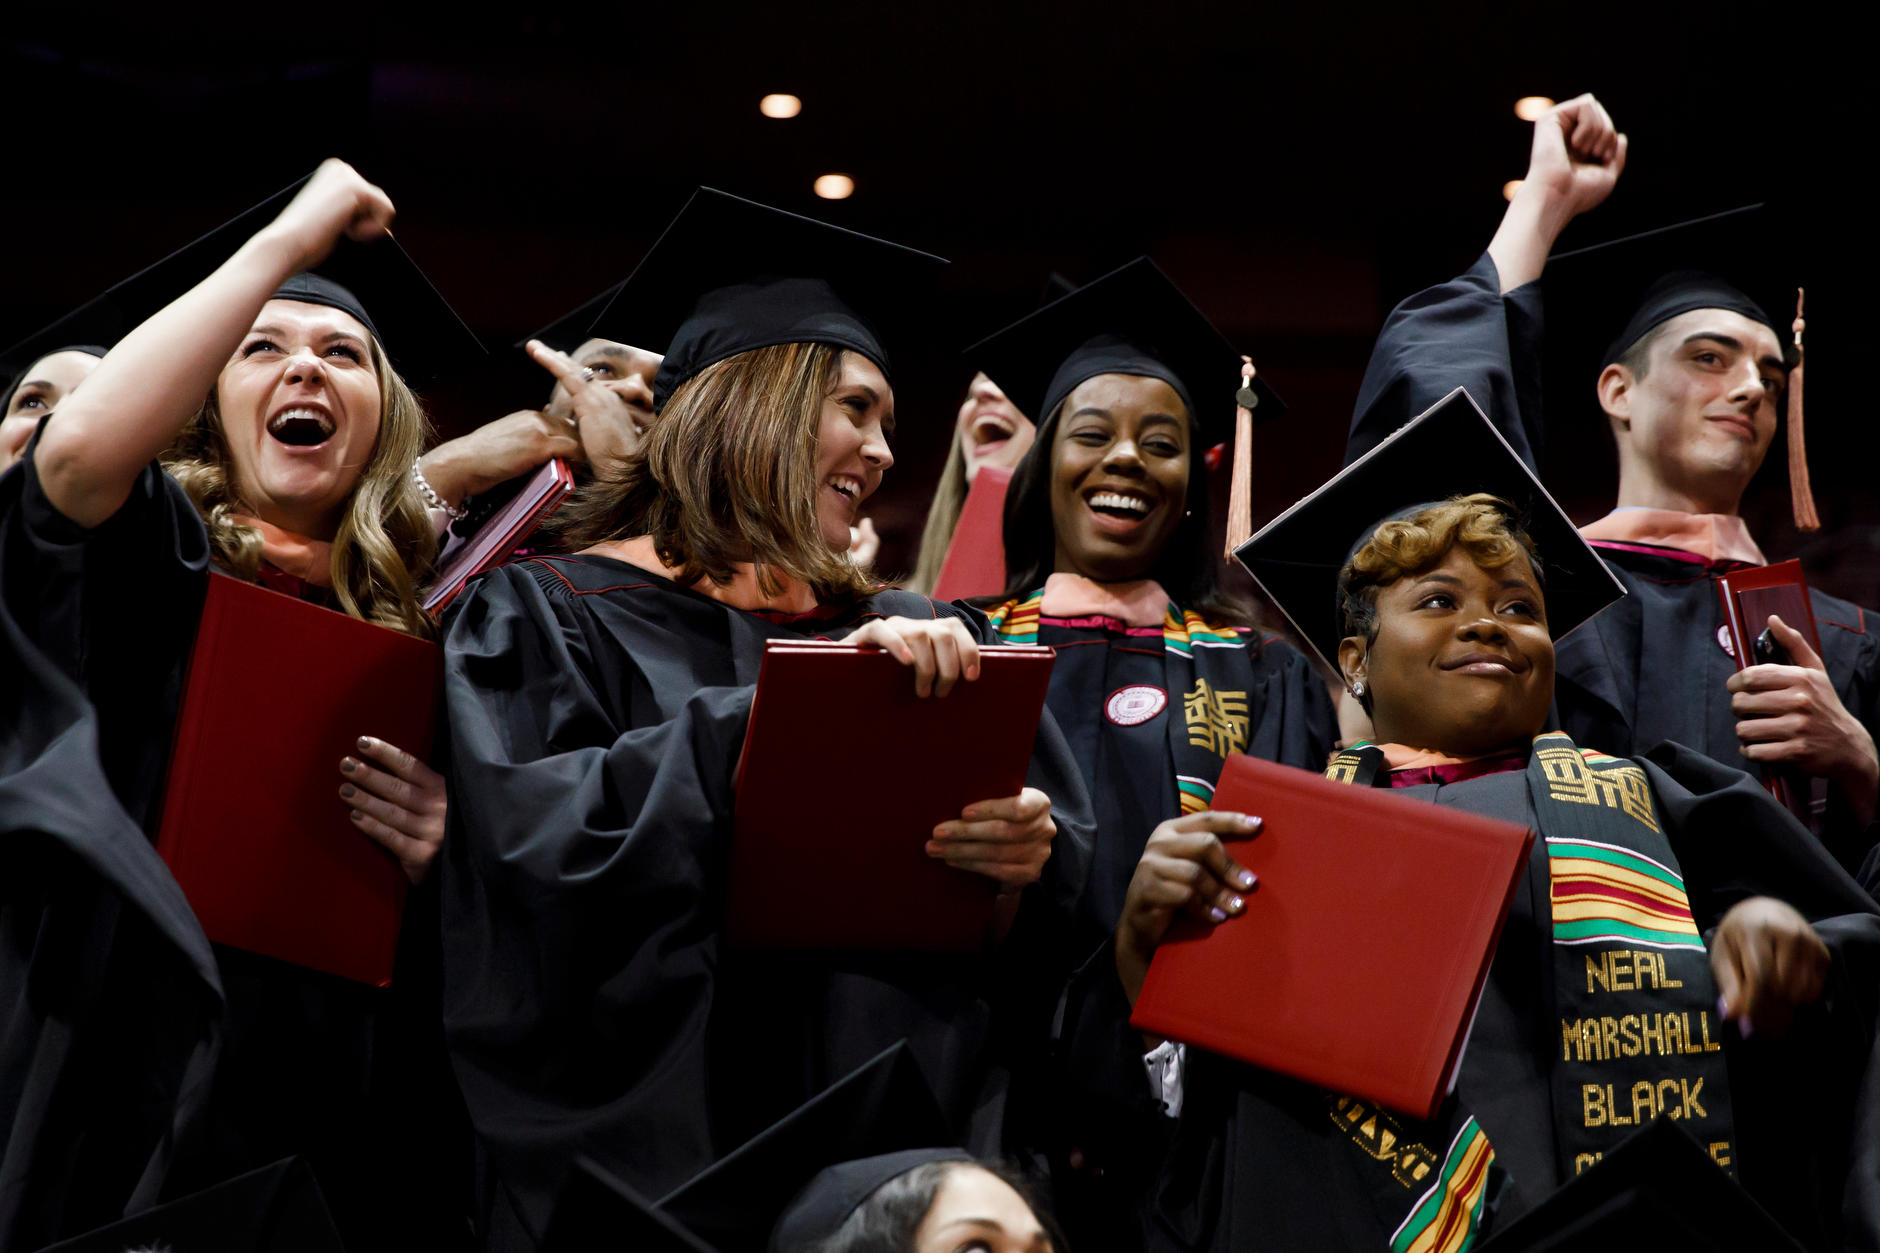 Graduates cheer during the Indiana University Bloomington Graduate Commencement at Assembly Hall on Friday, May 3, 2019. (James Brosher/Indiana University)